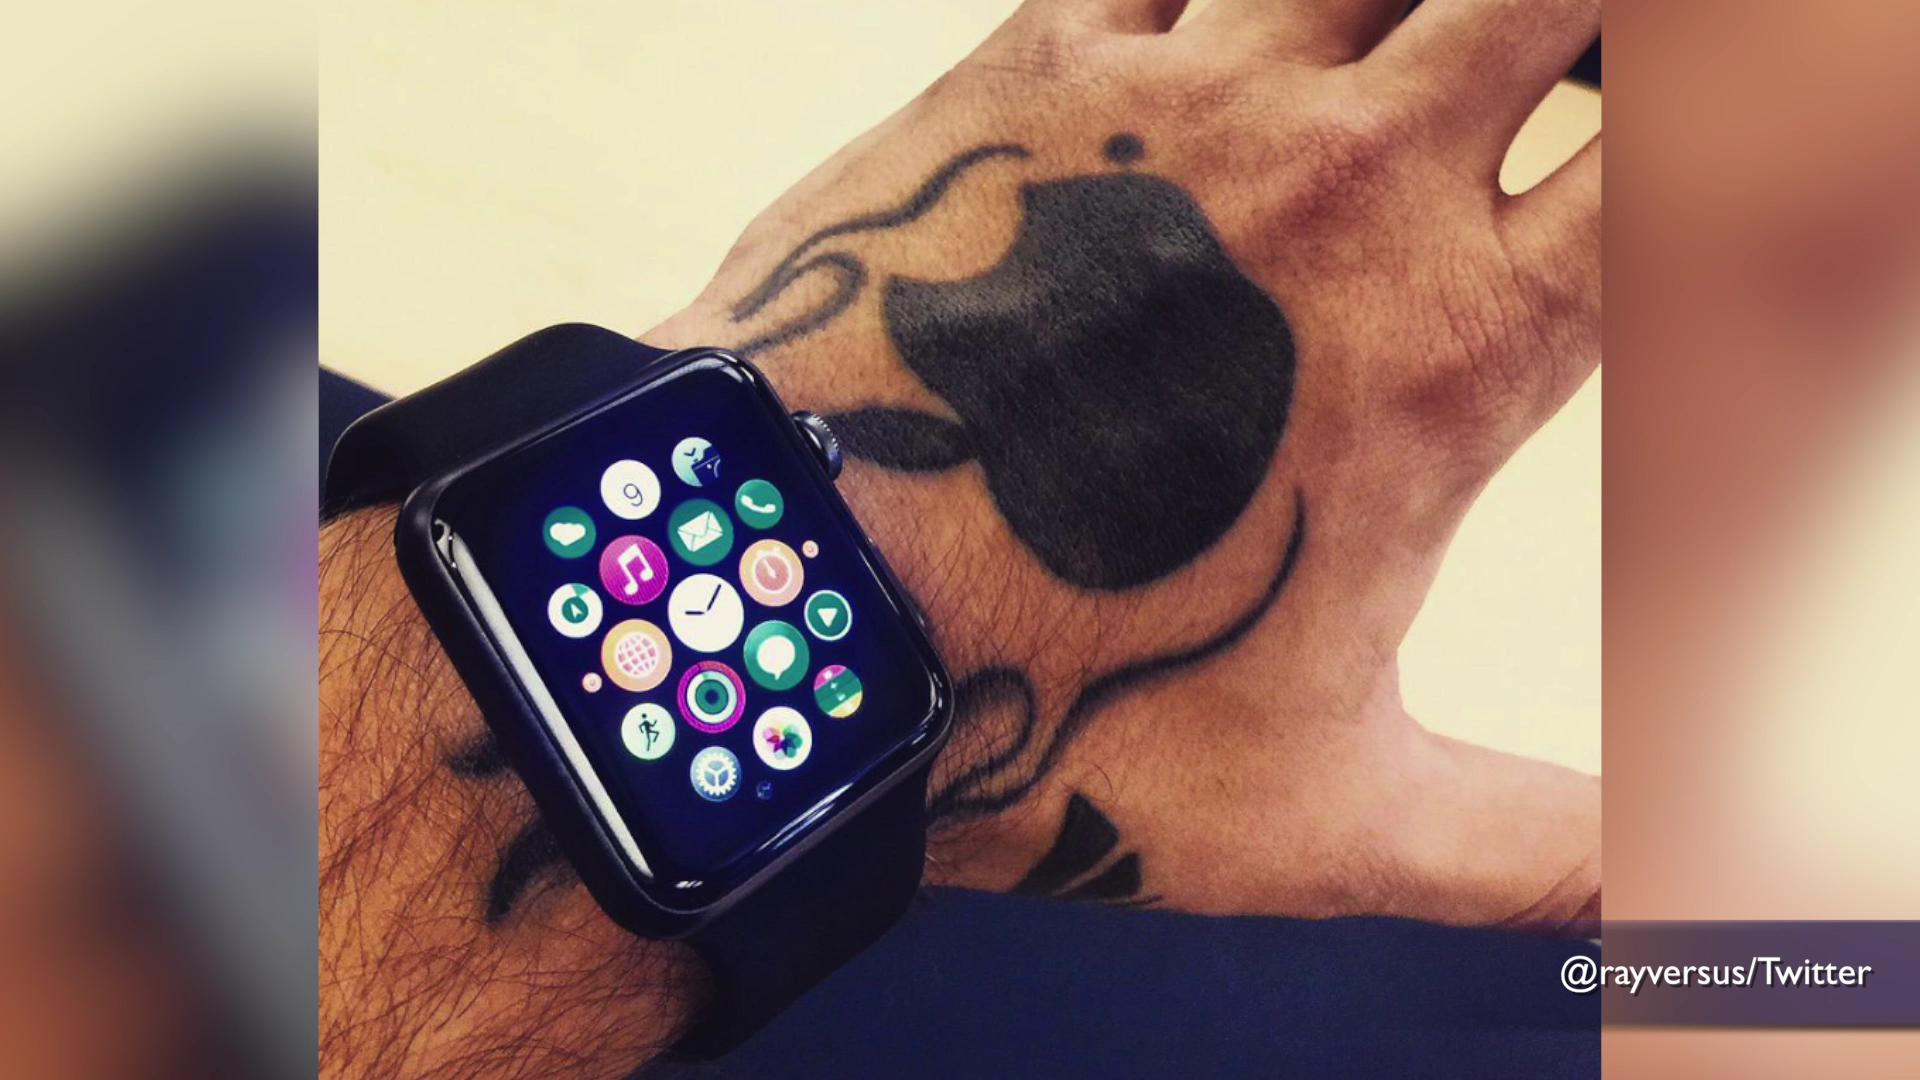 Apple Watch has a problem with tattoos